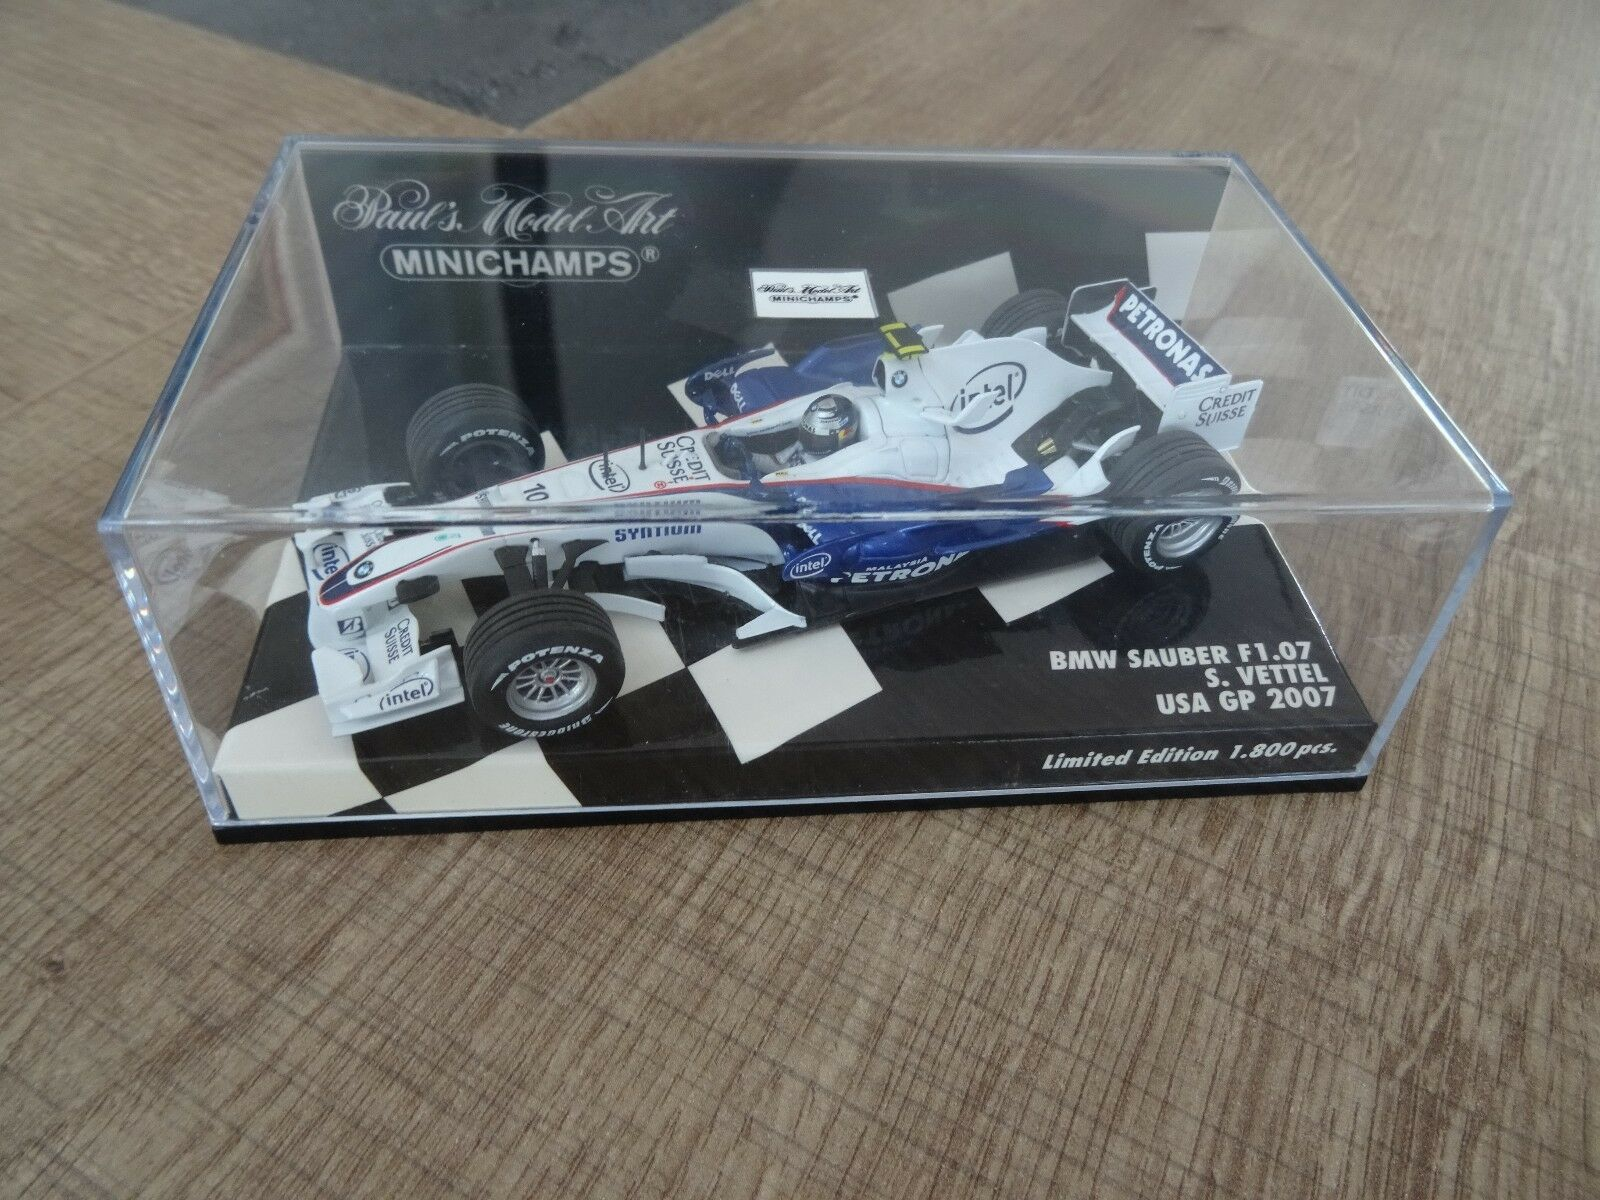 1 43 MINICHAMPS BMW SAUBER F1.07 S. VETTEL USA GP 2007 LIM. EDITION 1800 PCS